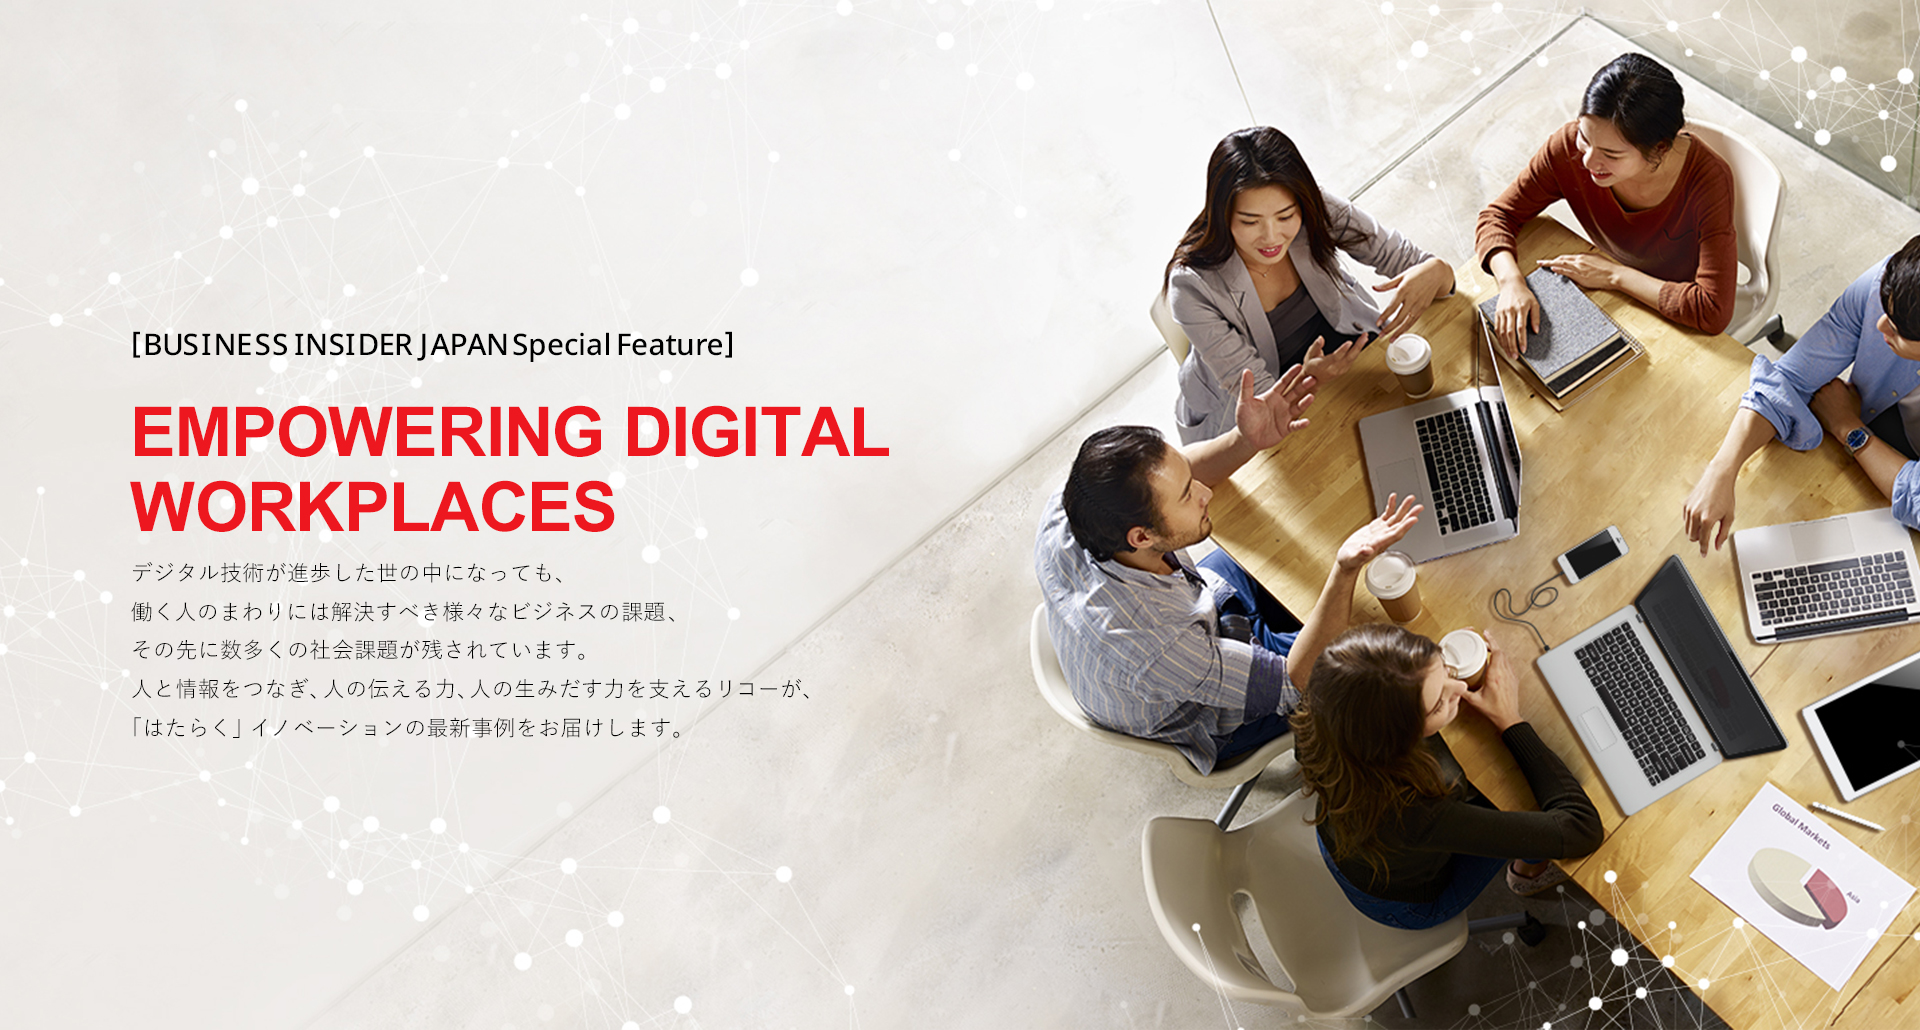 EMPOWERING DIGITAL WORKPLACES